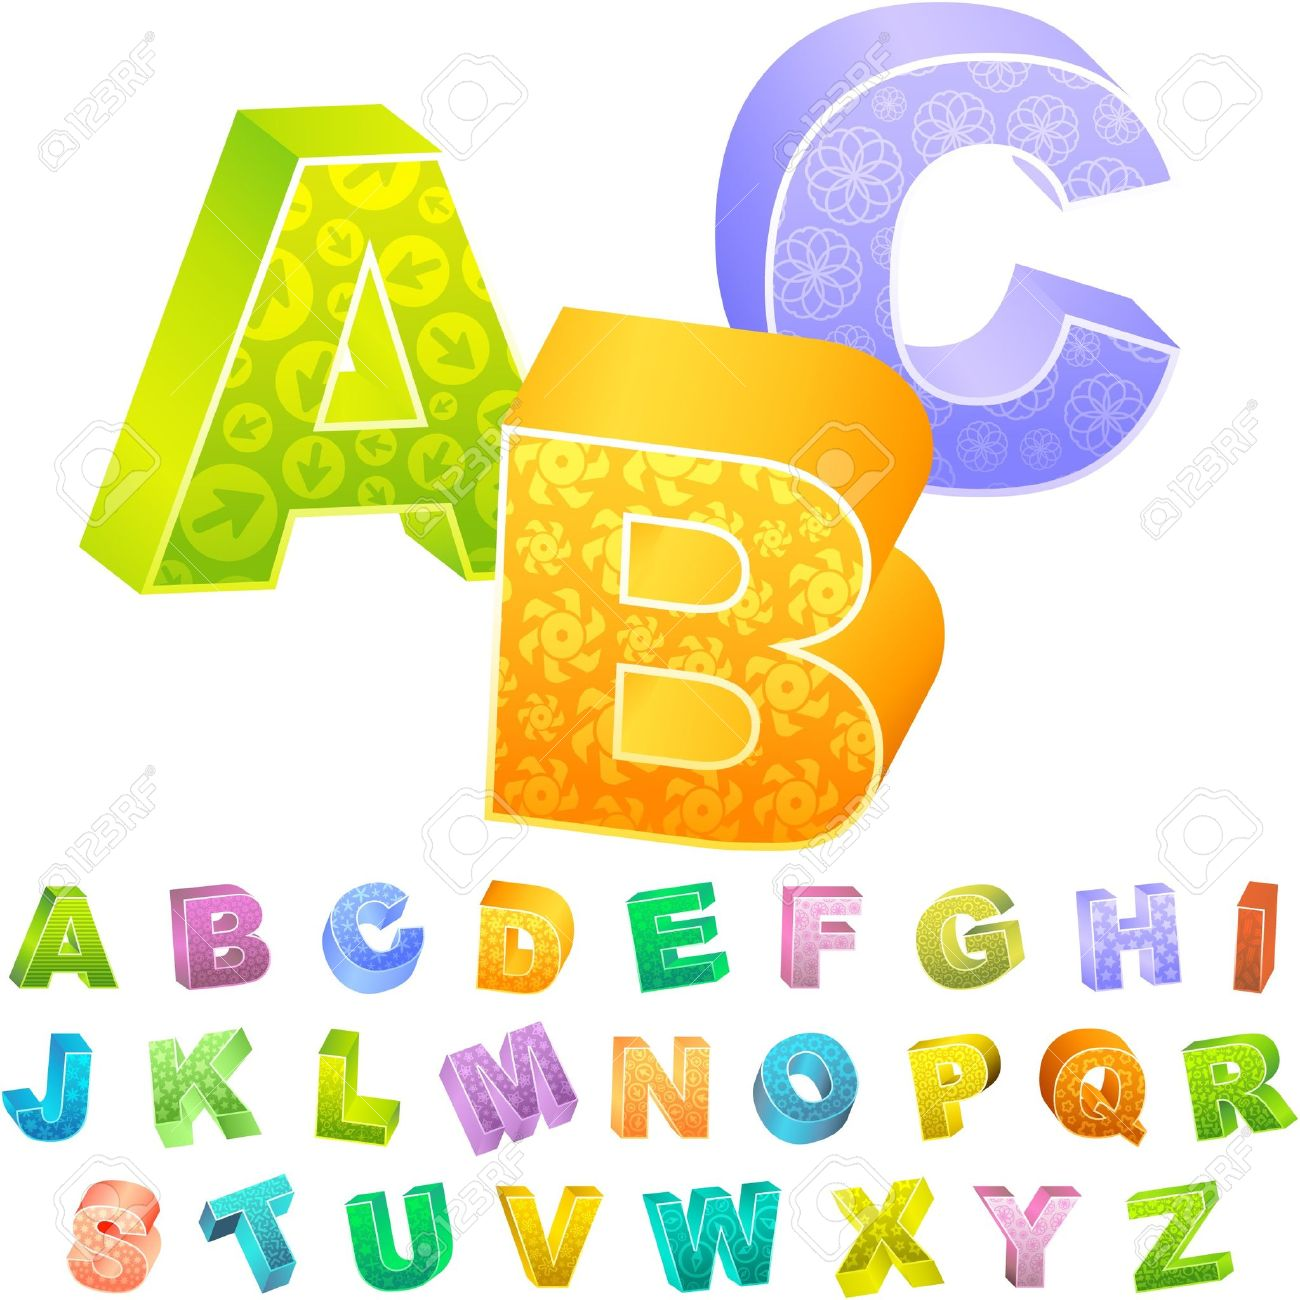 Letter s clipart colored clip transparent stock Colored 3d Alphabet. Royalty Free Cliparts, Vectors, And Stock ... clip transparent stock